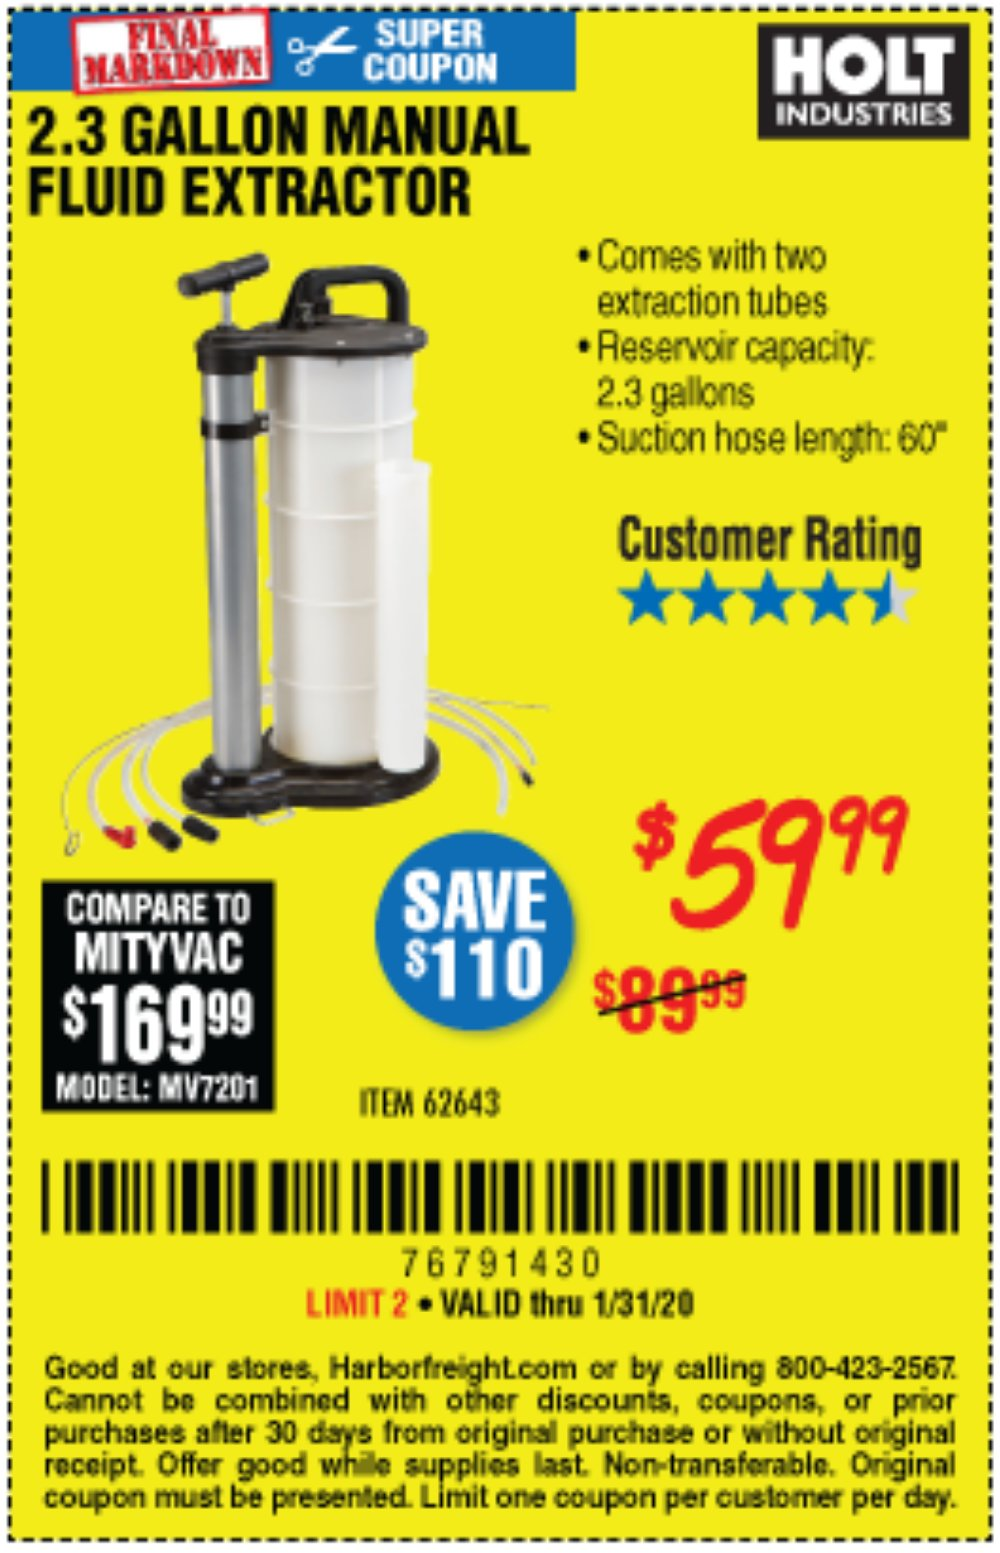 Harbor Freight Coupon, HF Coupons - 2.3 Gal. Manual Fluid Extractor